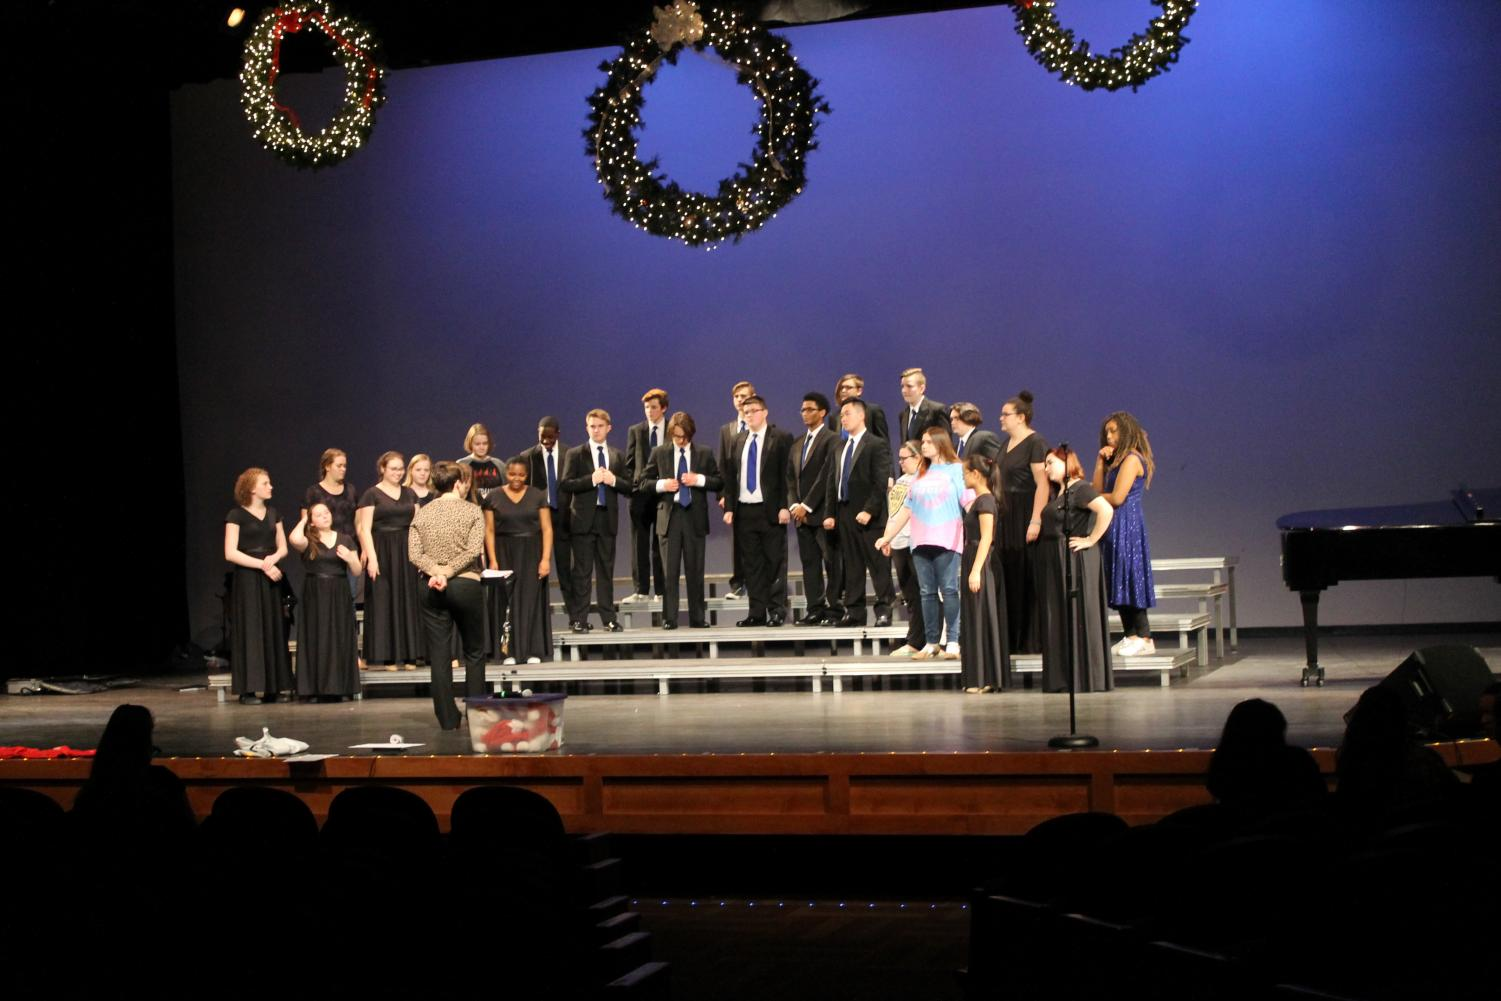 The choir performs at the concert